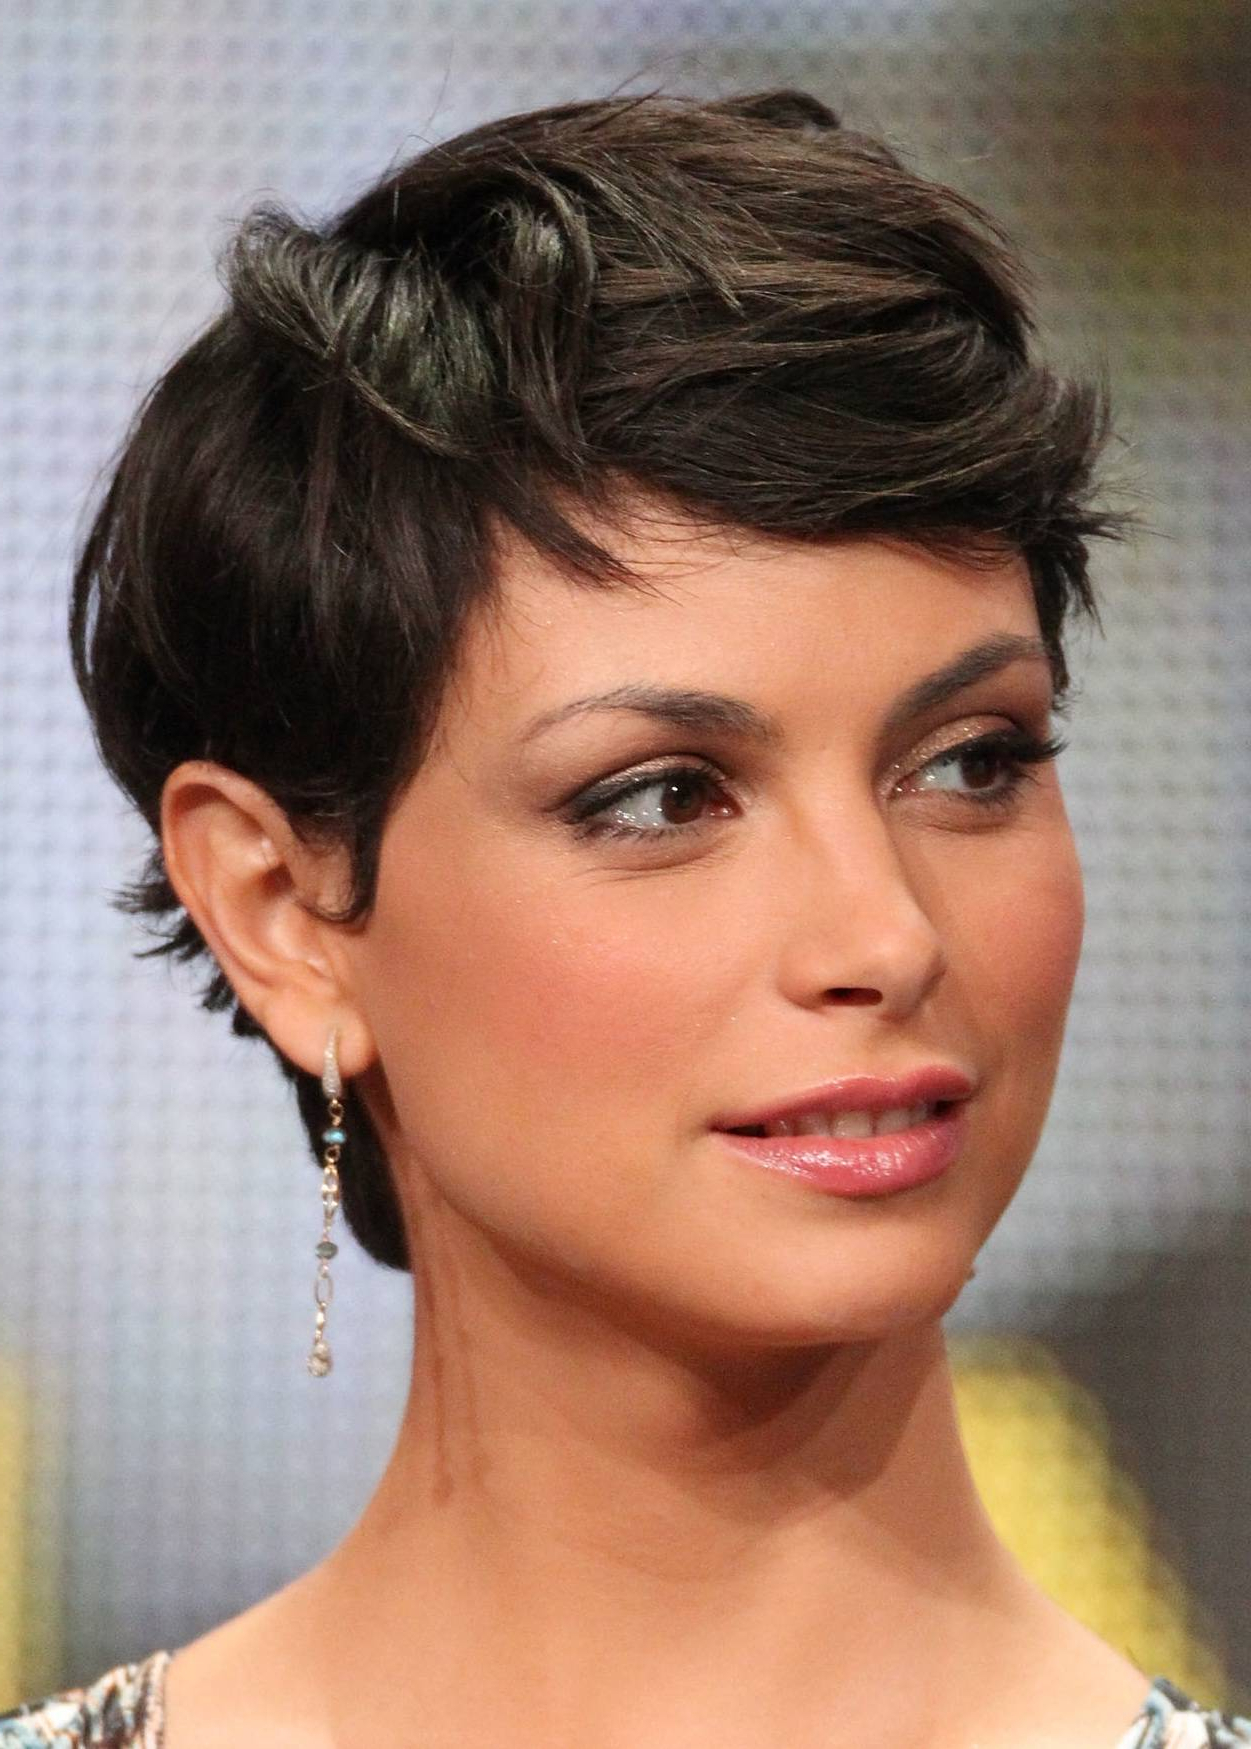 Short Pixie Hairstyles For Women • Your Hair Club Pertaining To Cropped Pixie Haircuts For A Round Face (View 11 of 20)